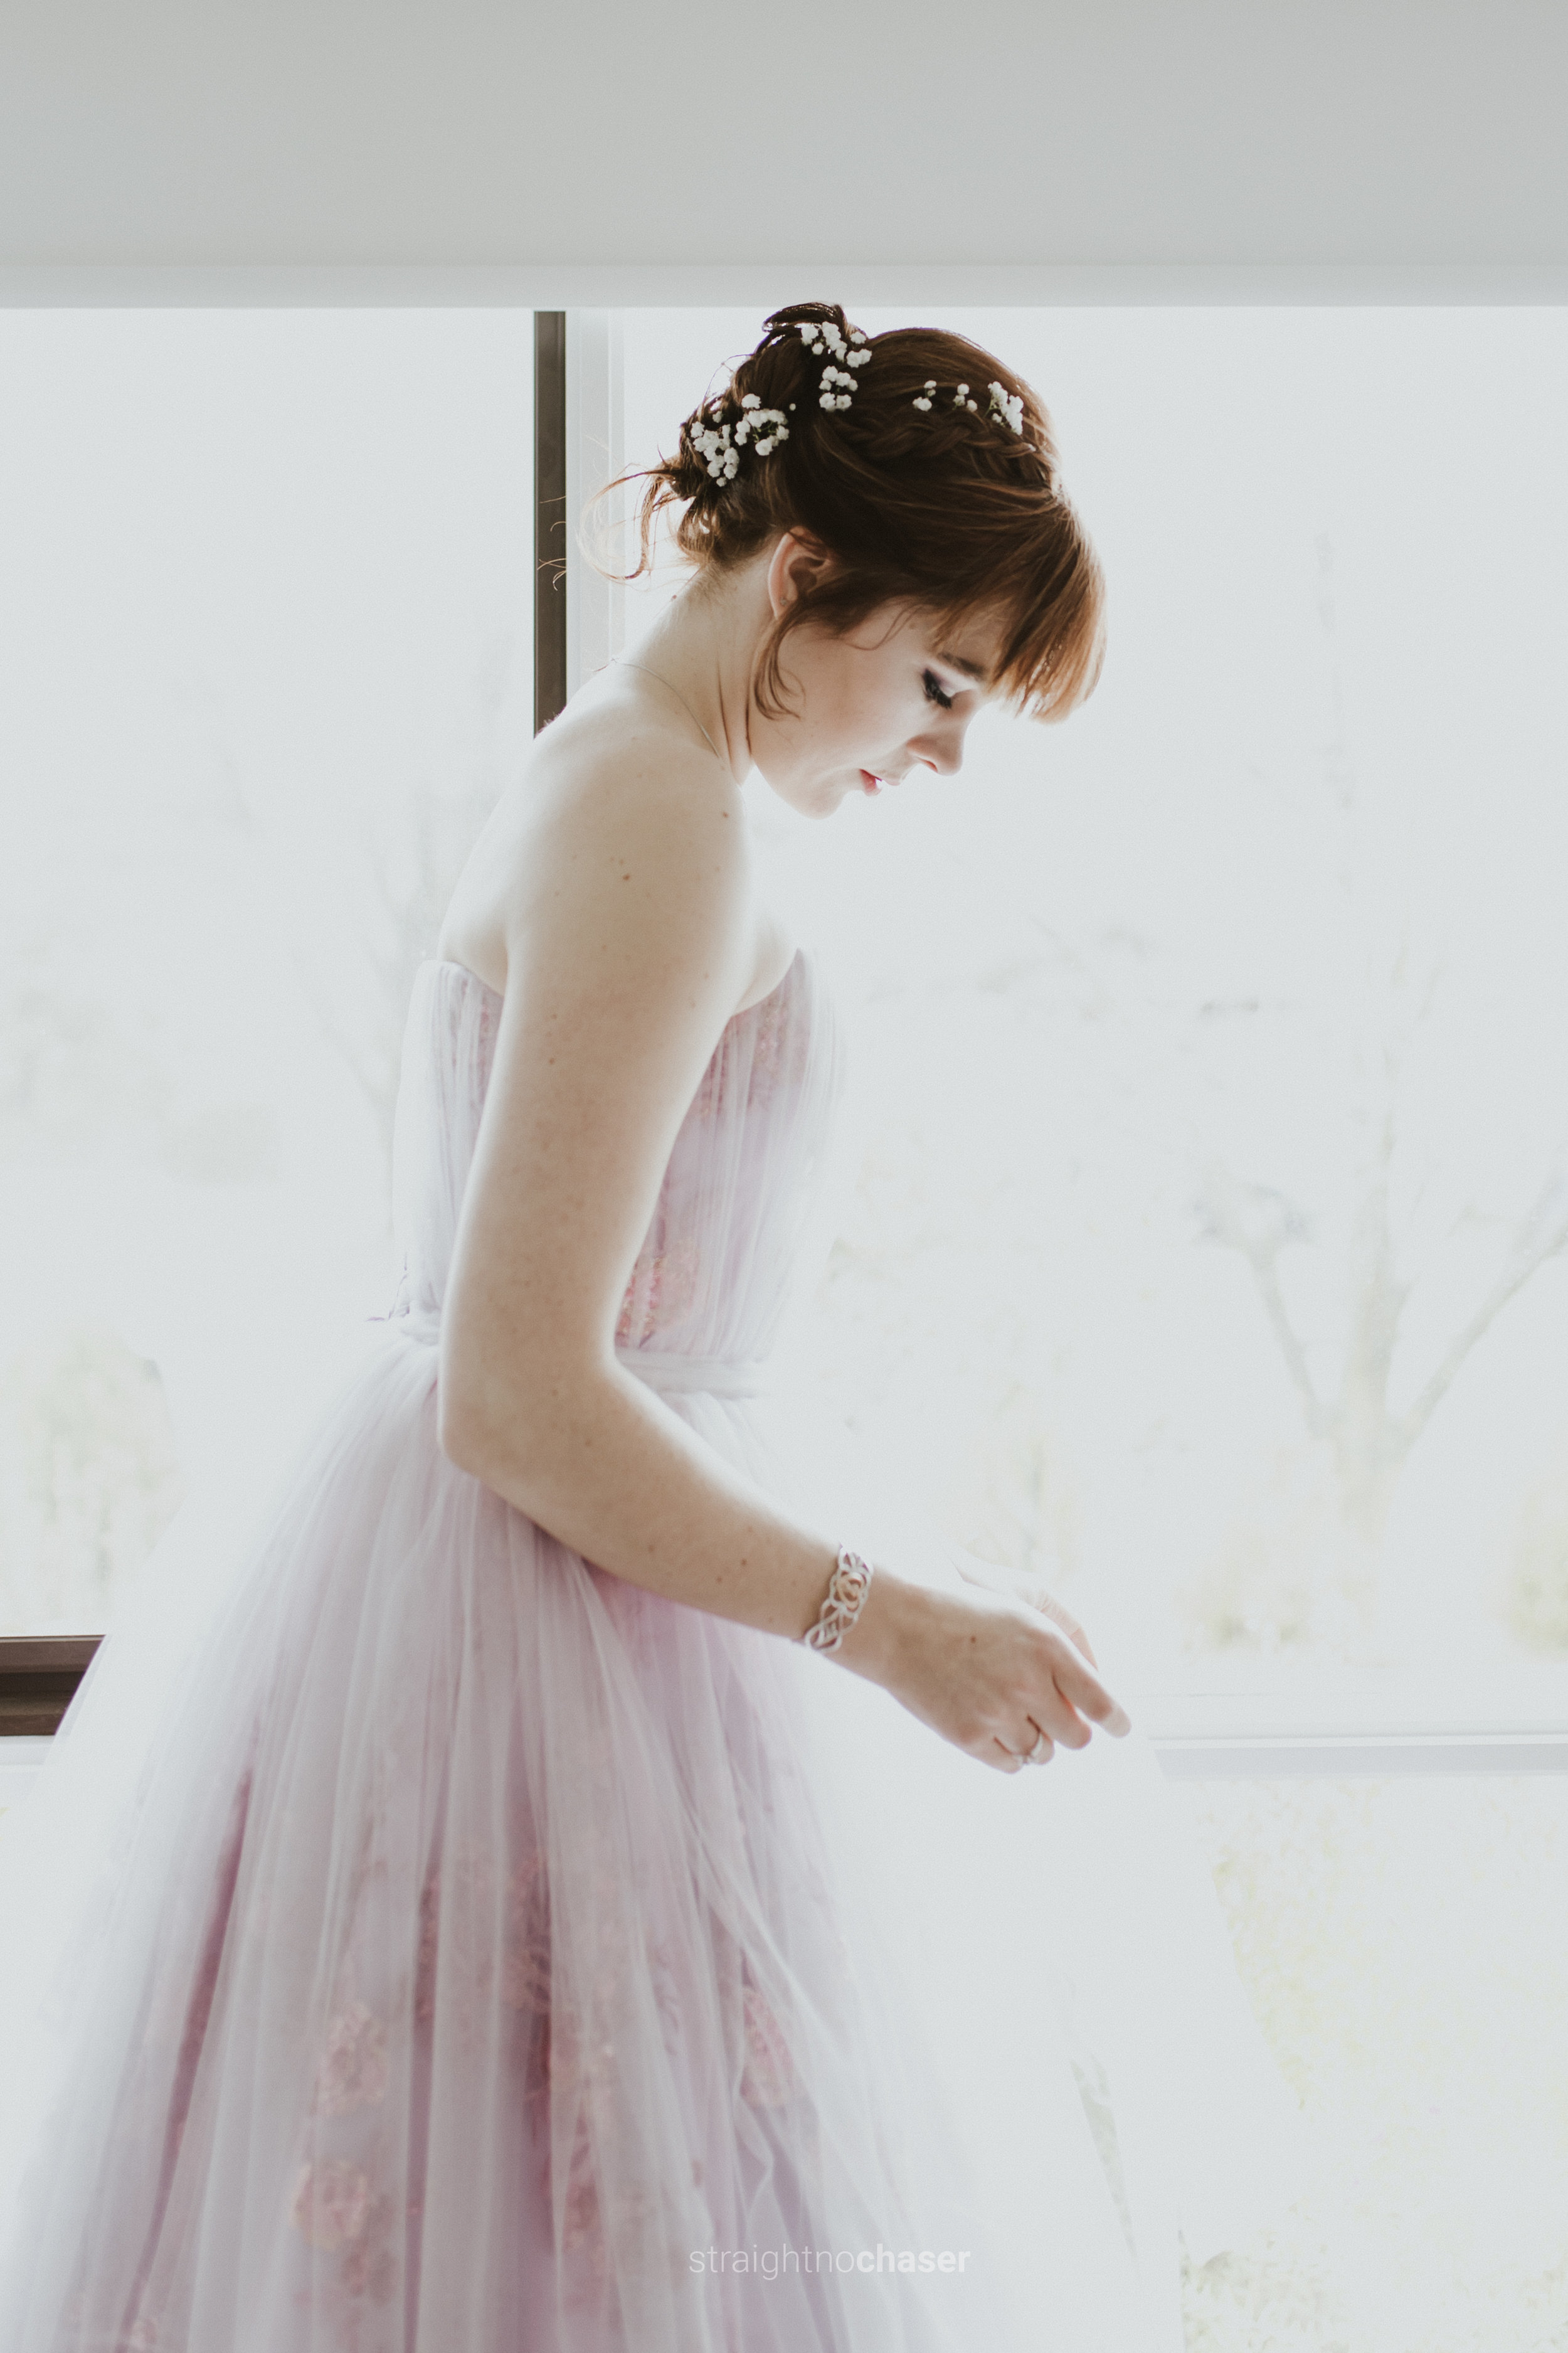 Bride unconventional mauve tulle wedding dress - getting ready- Straight No Chaser Photography